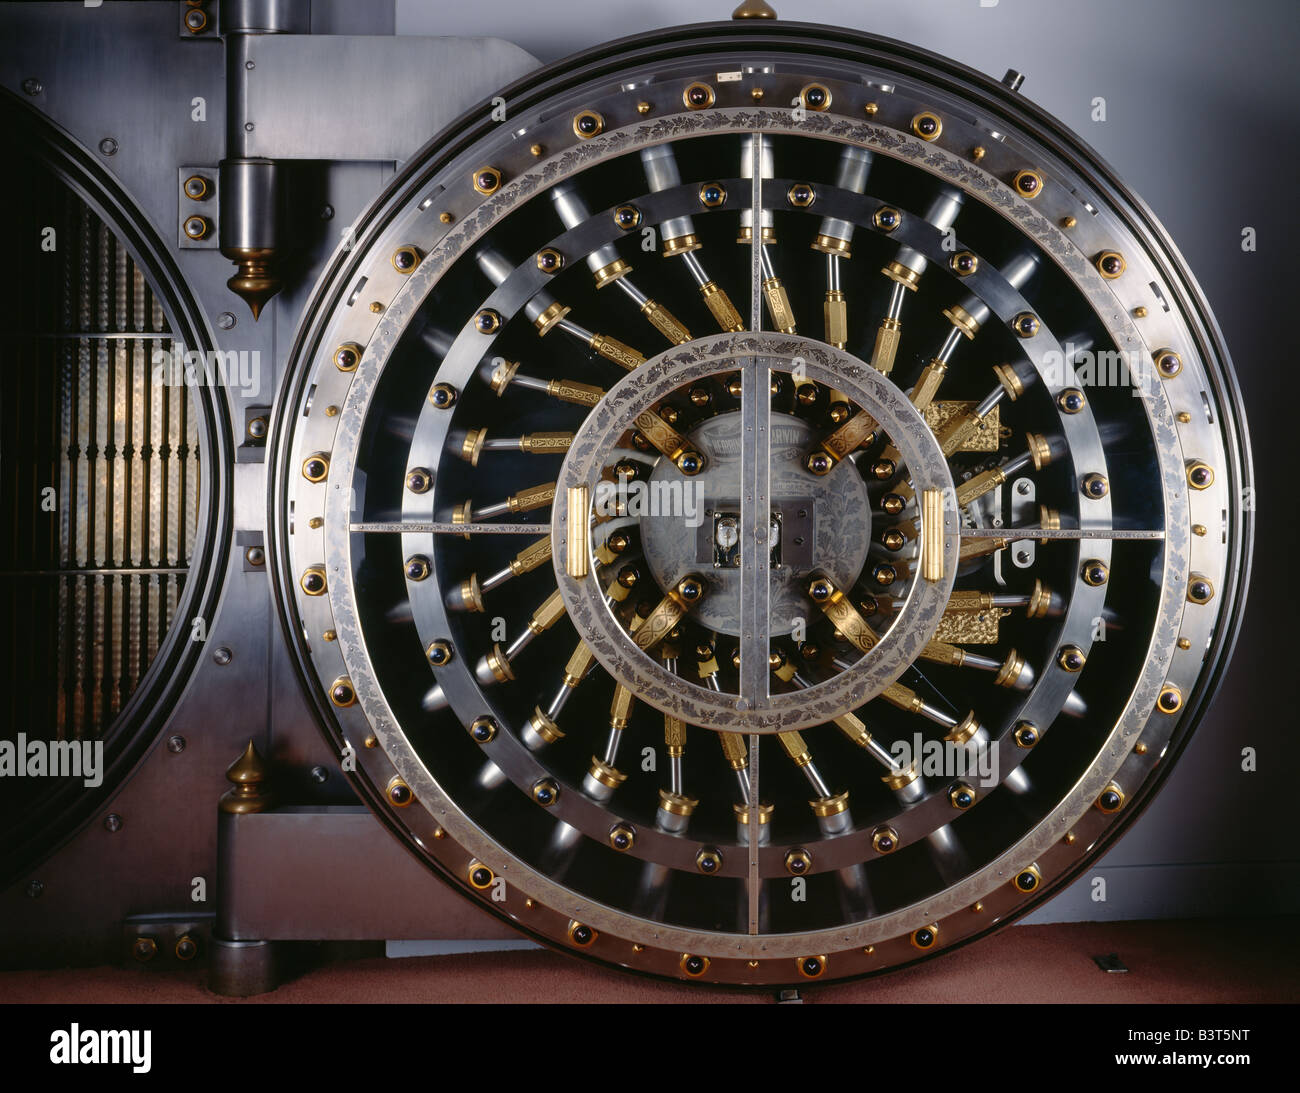 Bank vault door, featuring the stainless steel and brass locking mechanism. - Stock Image